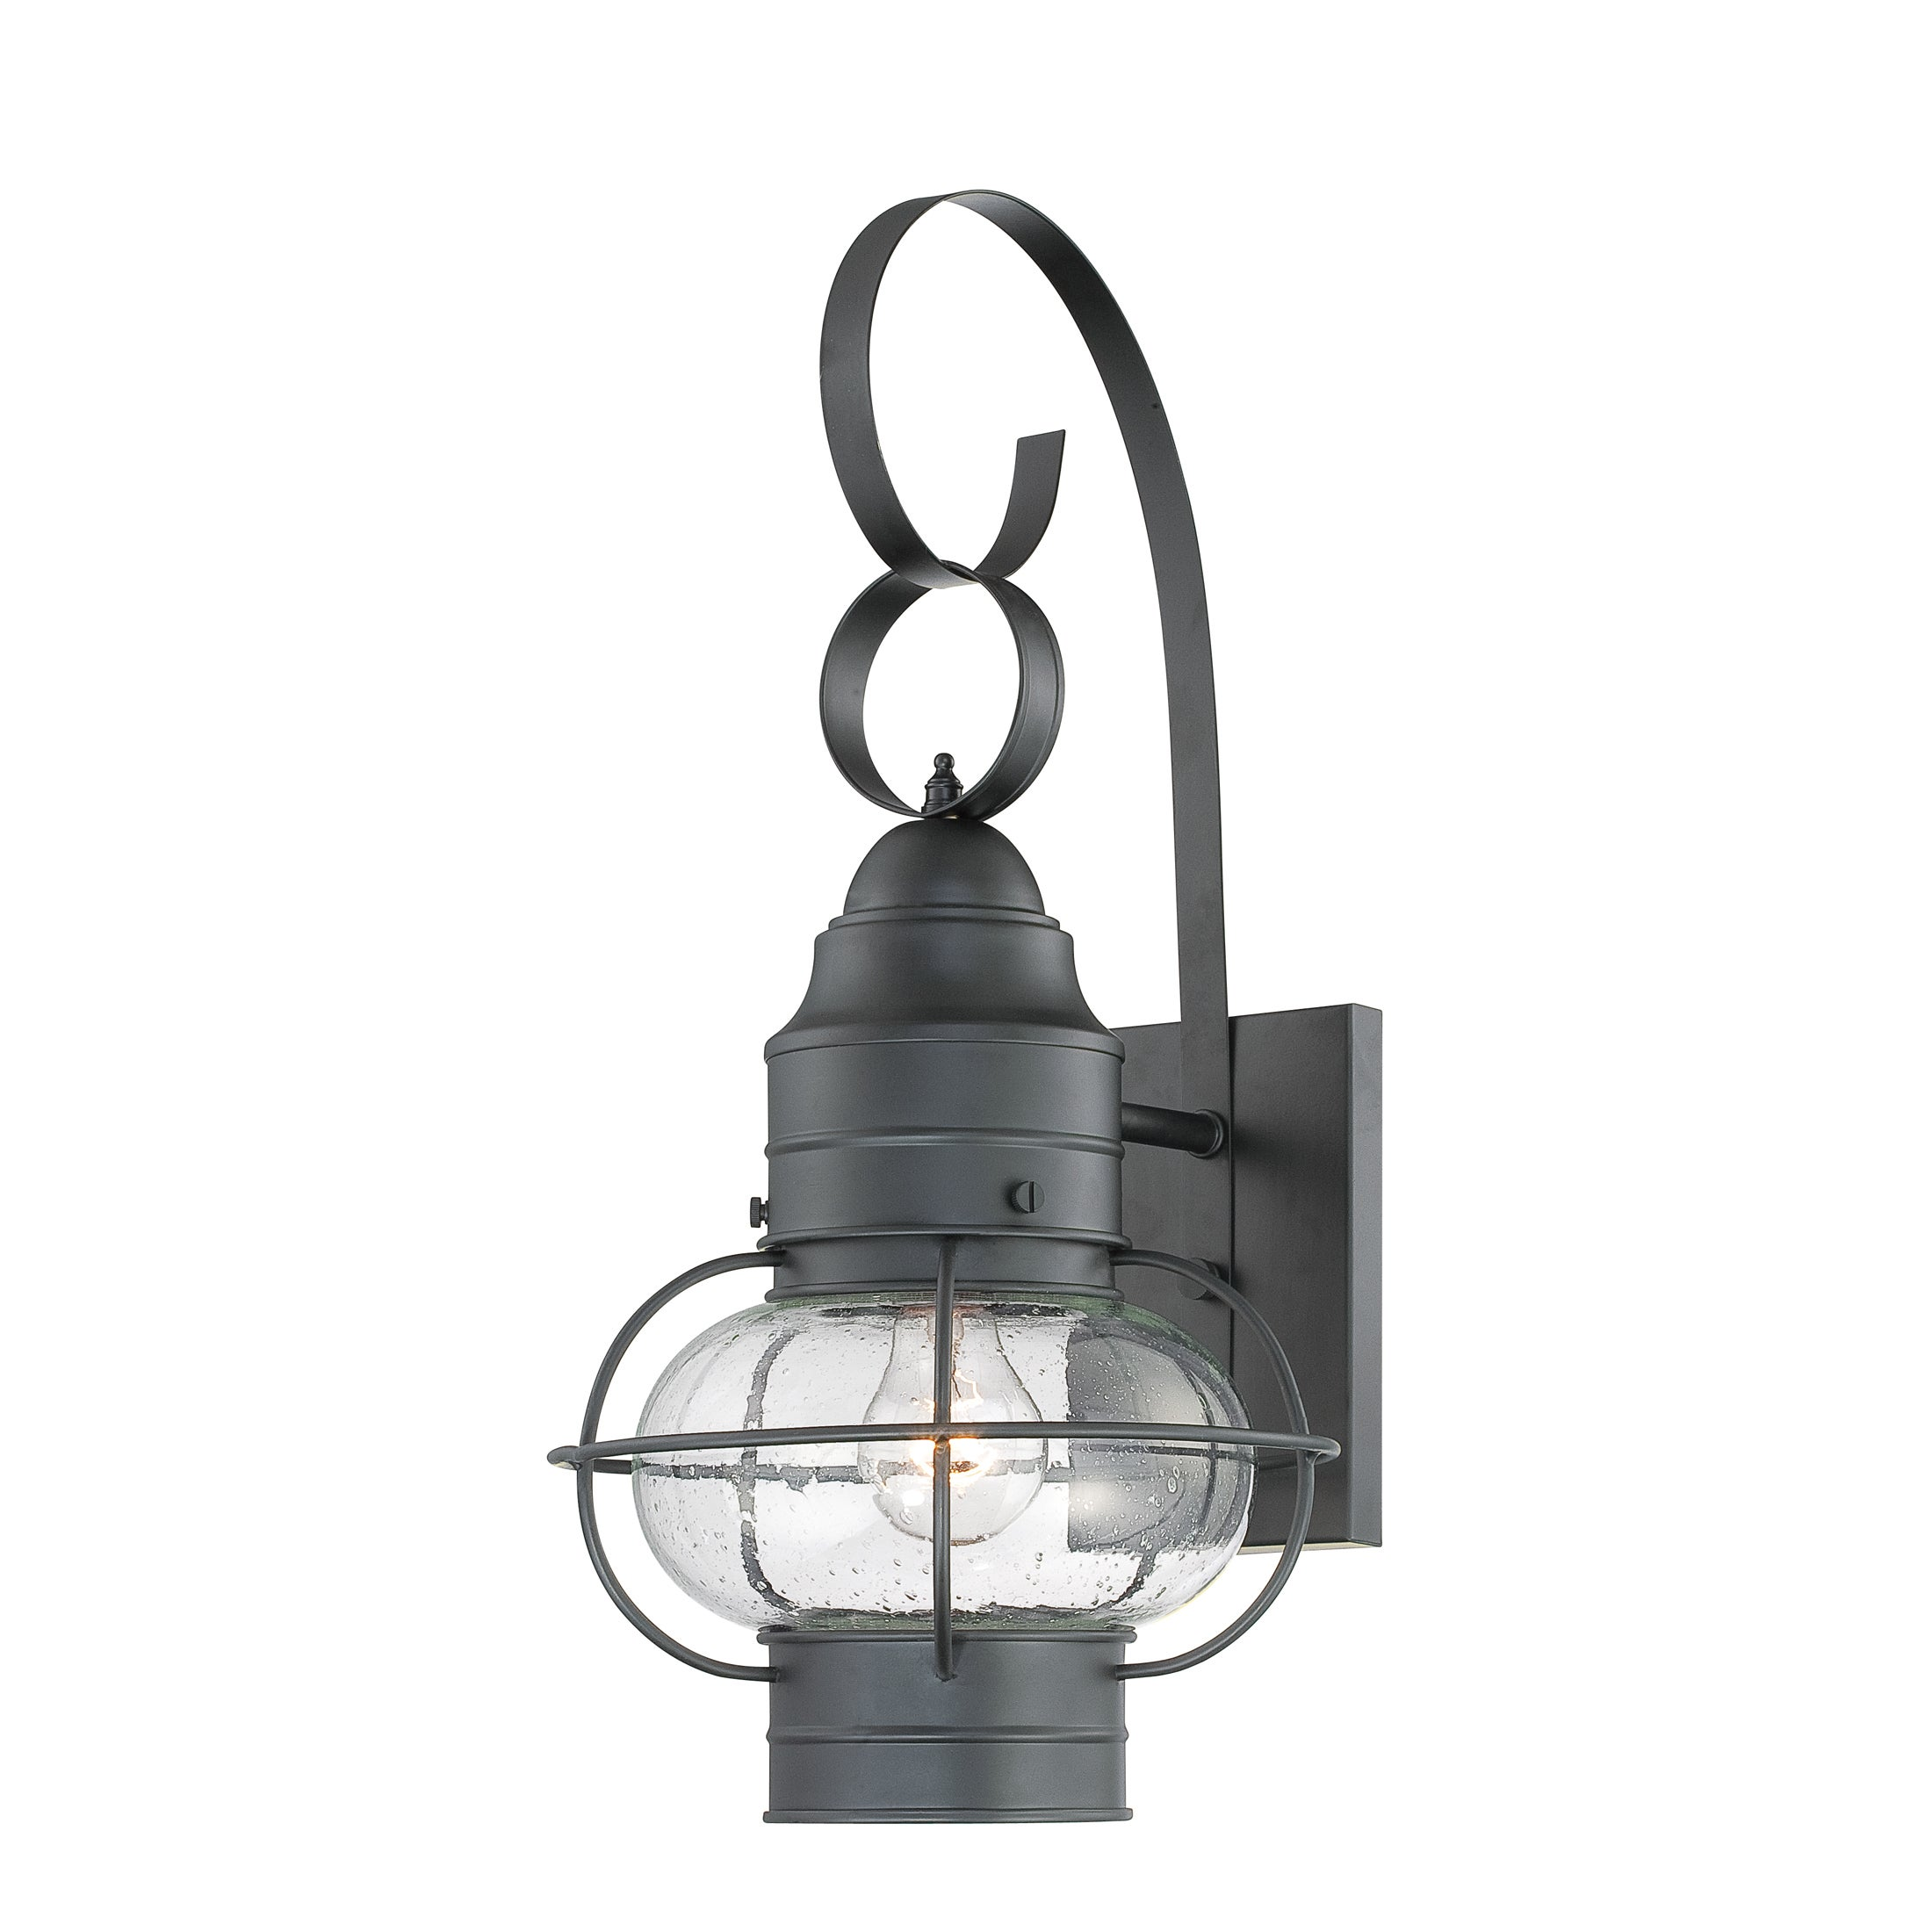 Havenside Home Imperial Cooper Outdoor Light Fixture